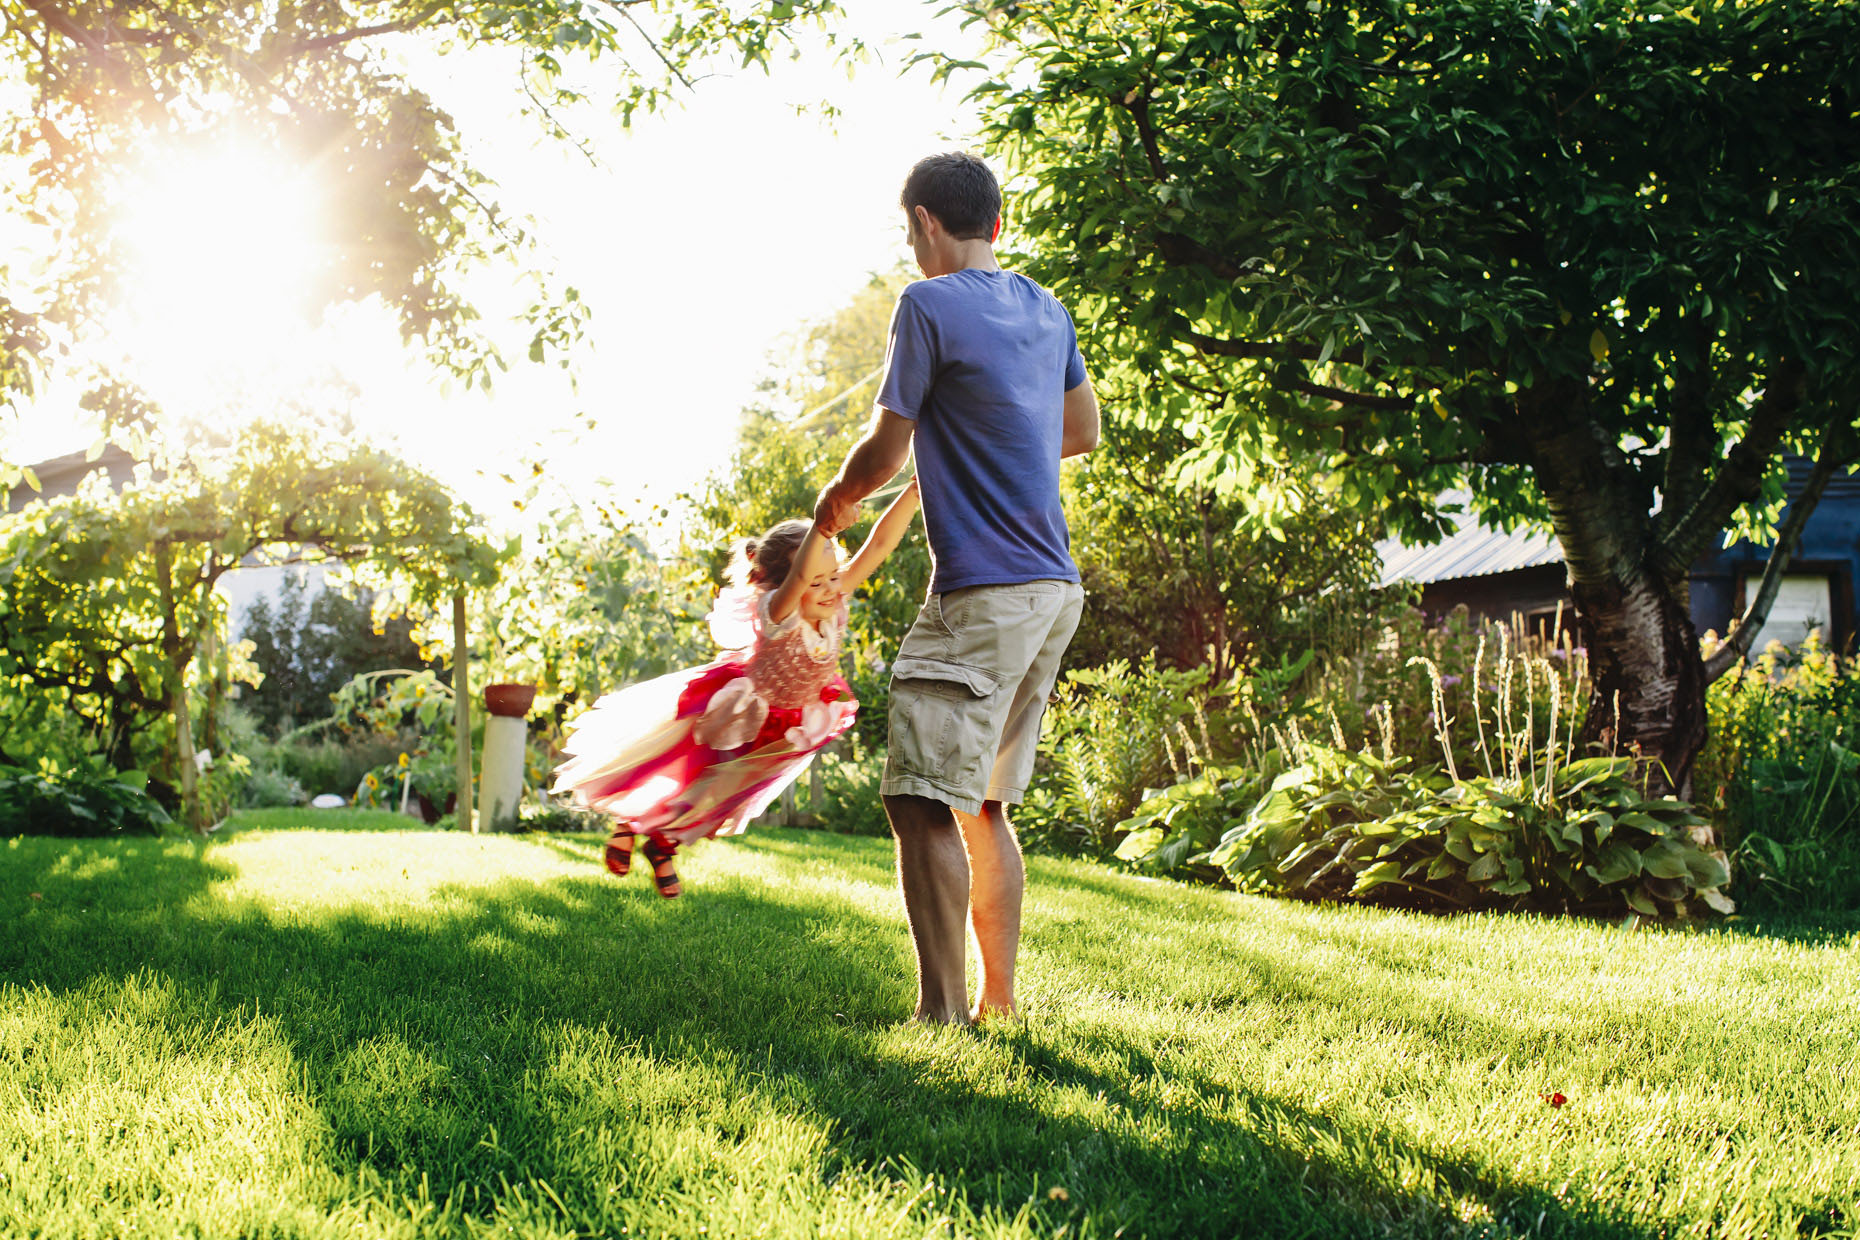 Dad twiriling daughter in fairy costume in garden